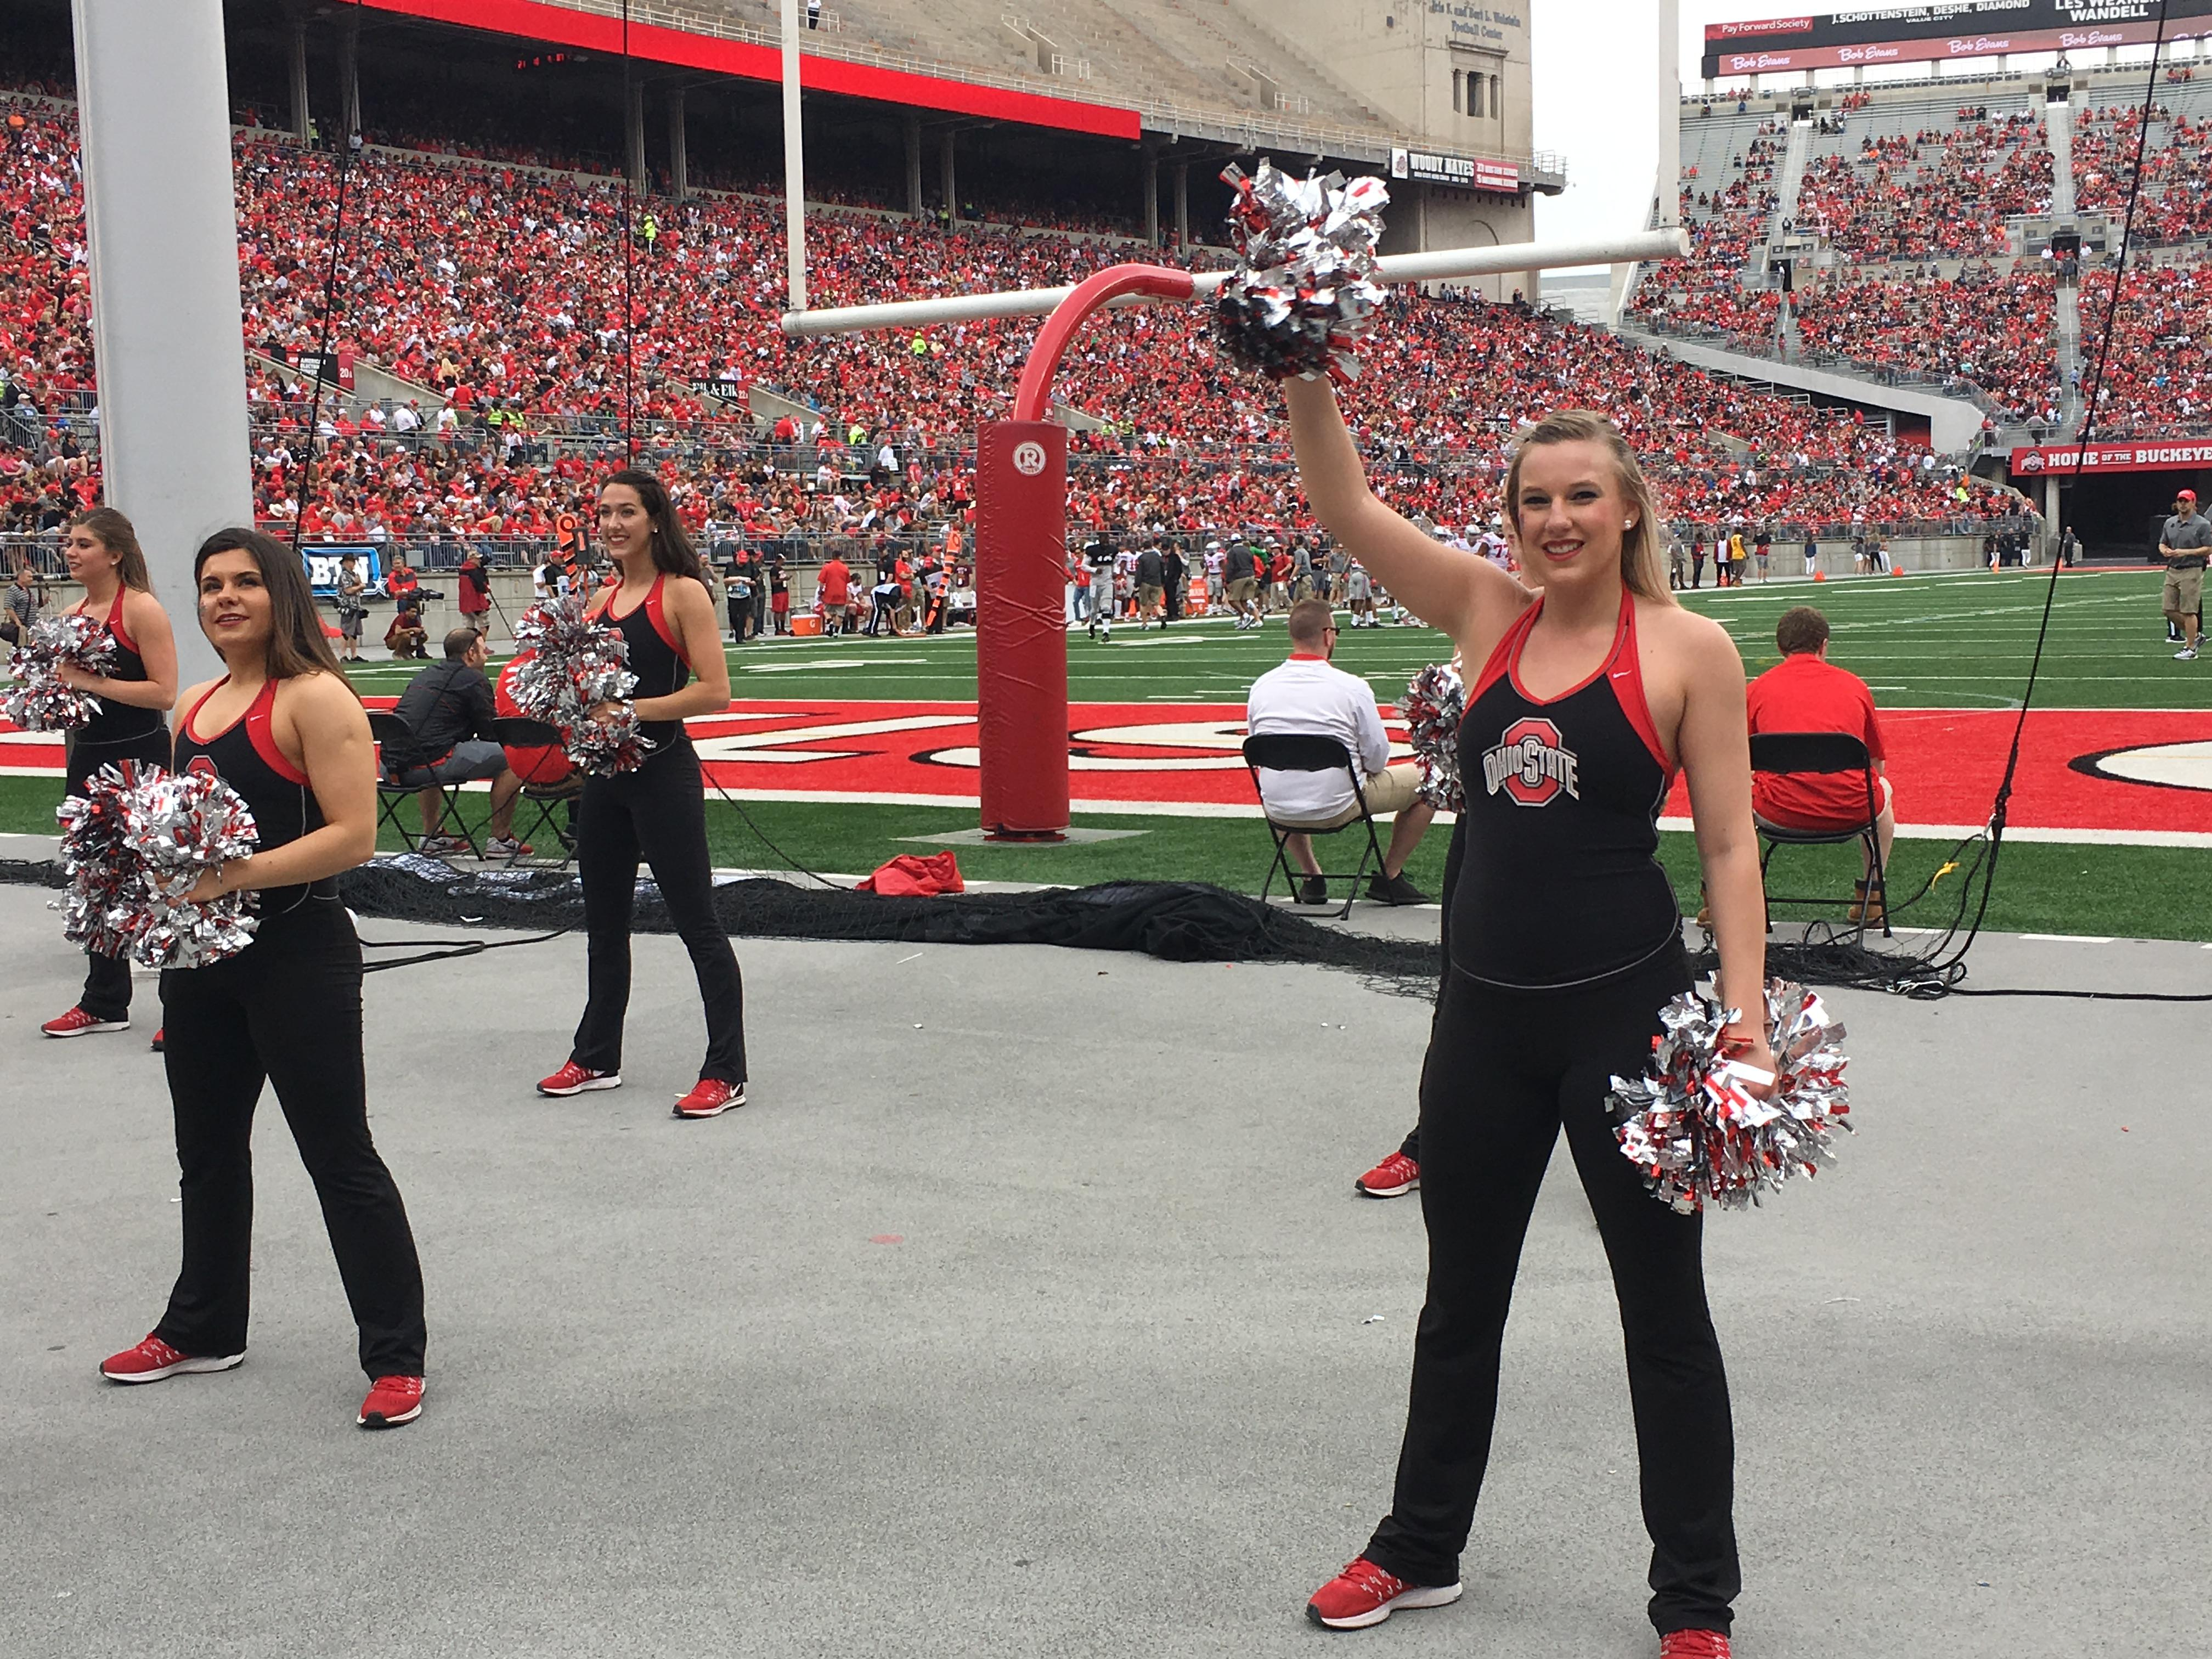 OSU cheerleaders